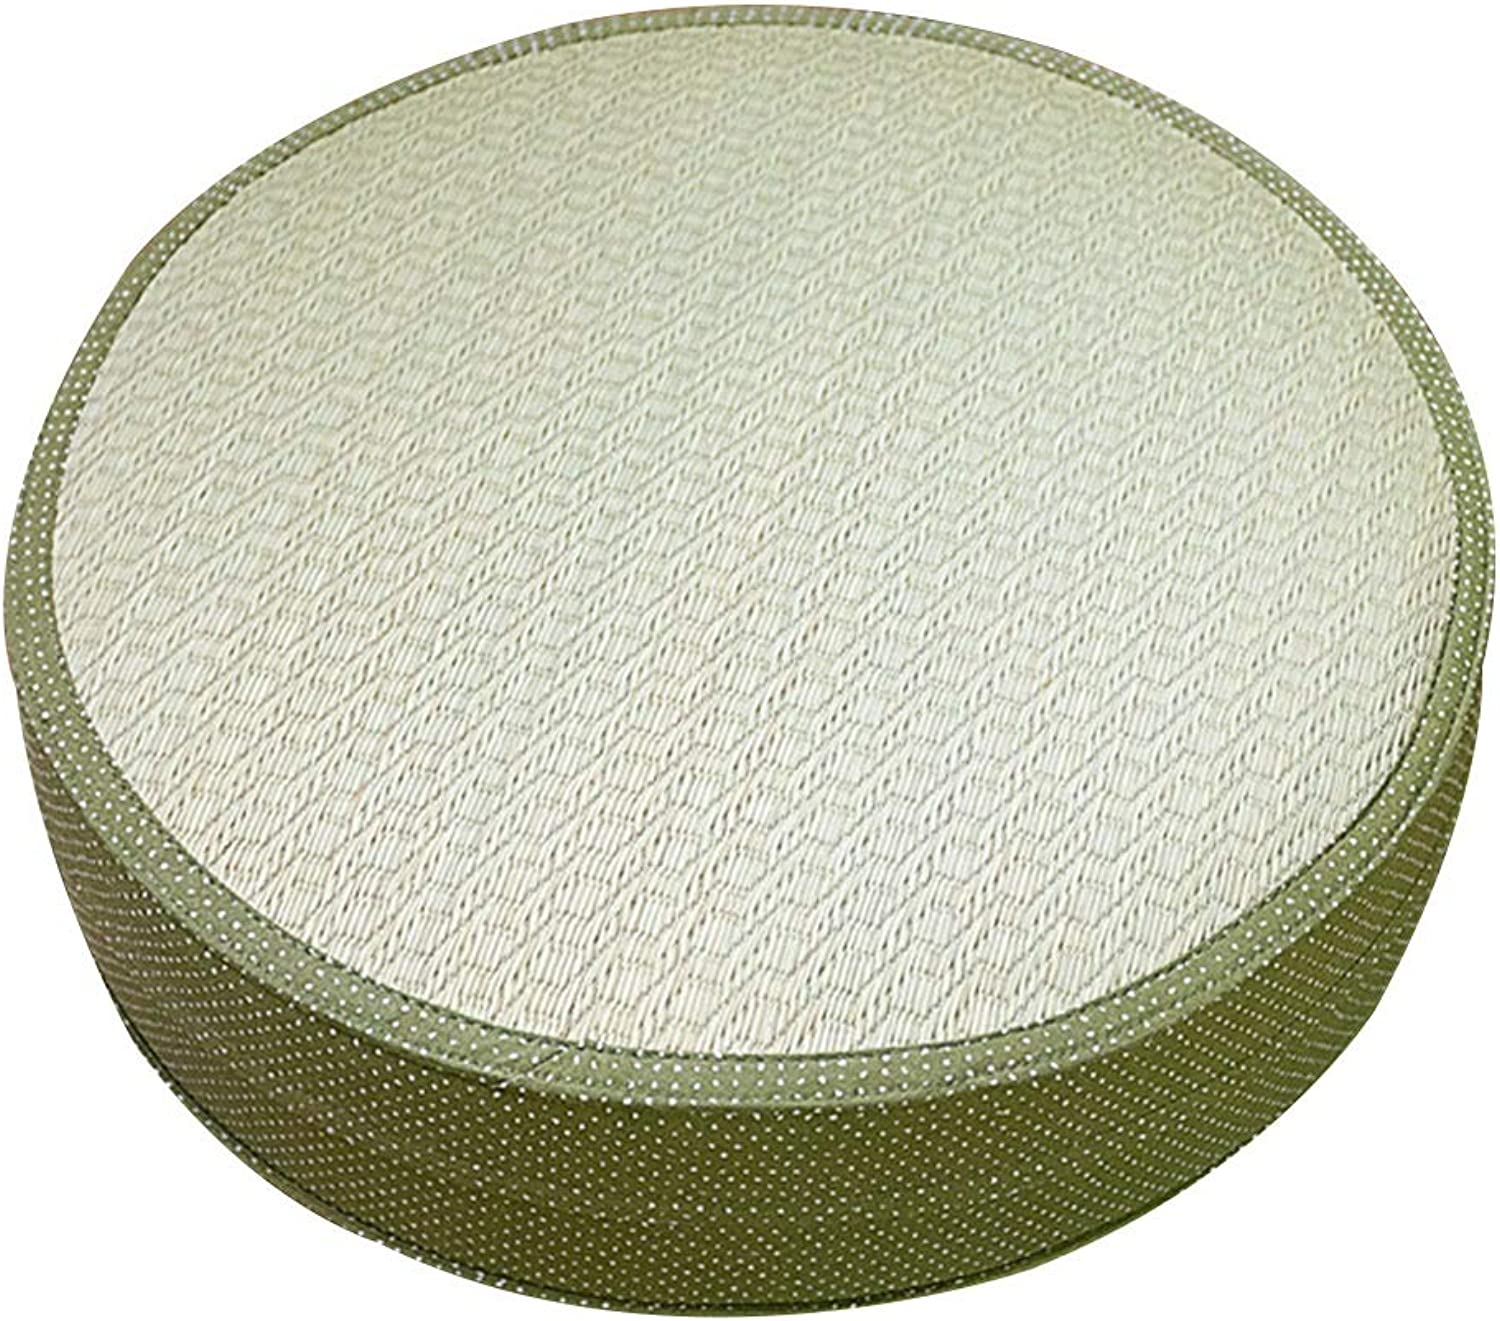 LSXIAO Pouffes And Footstools Circular Structure Natural Plants Warm in Winter and Cool in Summer Moisture Wicking Hand-Woven, 3 Sizes, 6 colors (color   Green A, Size   60x60x10cm)